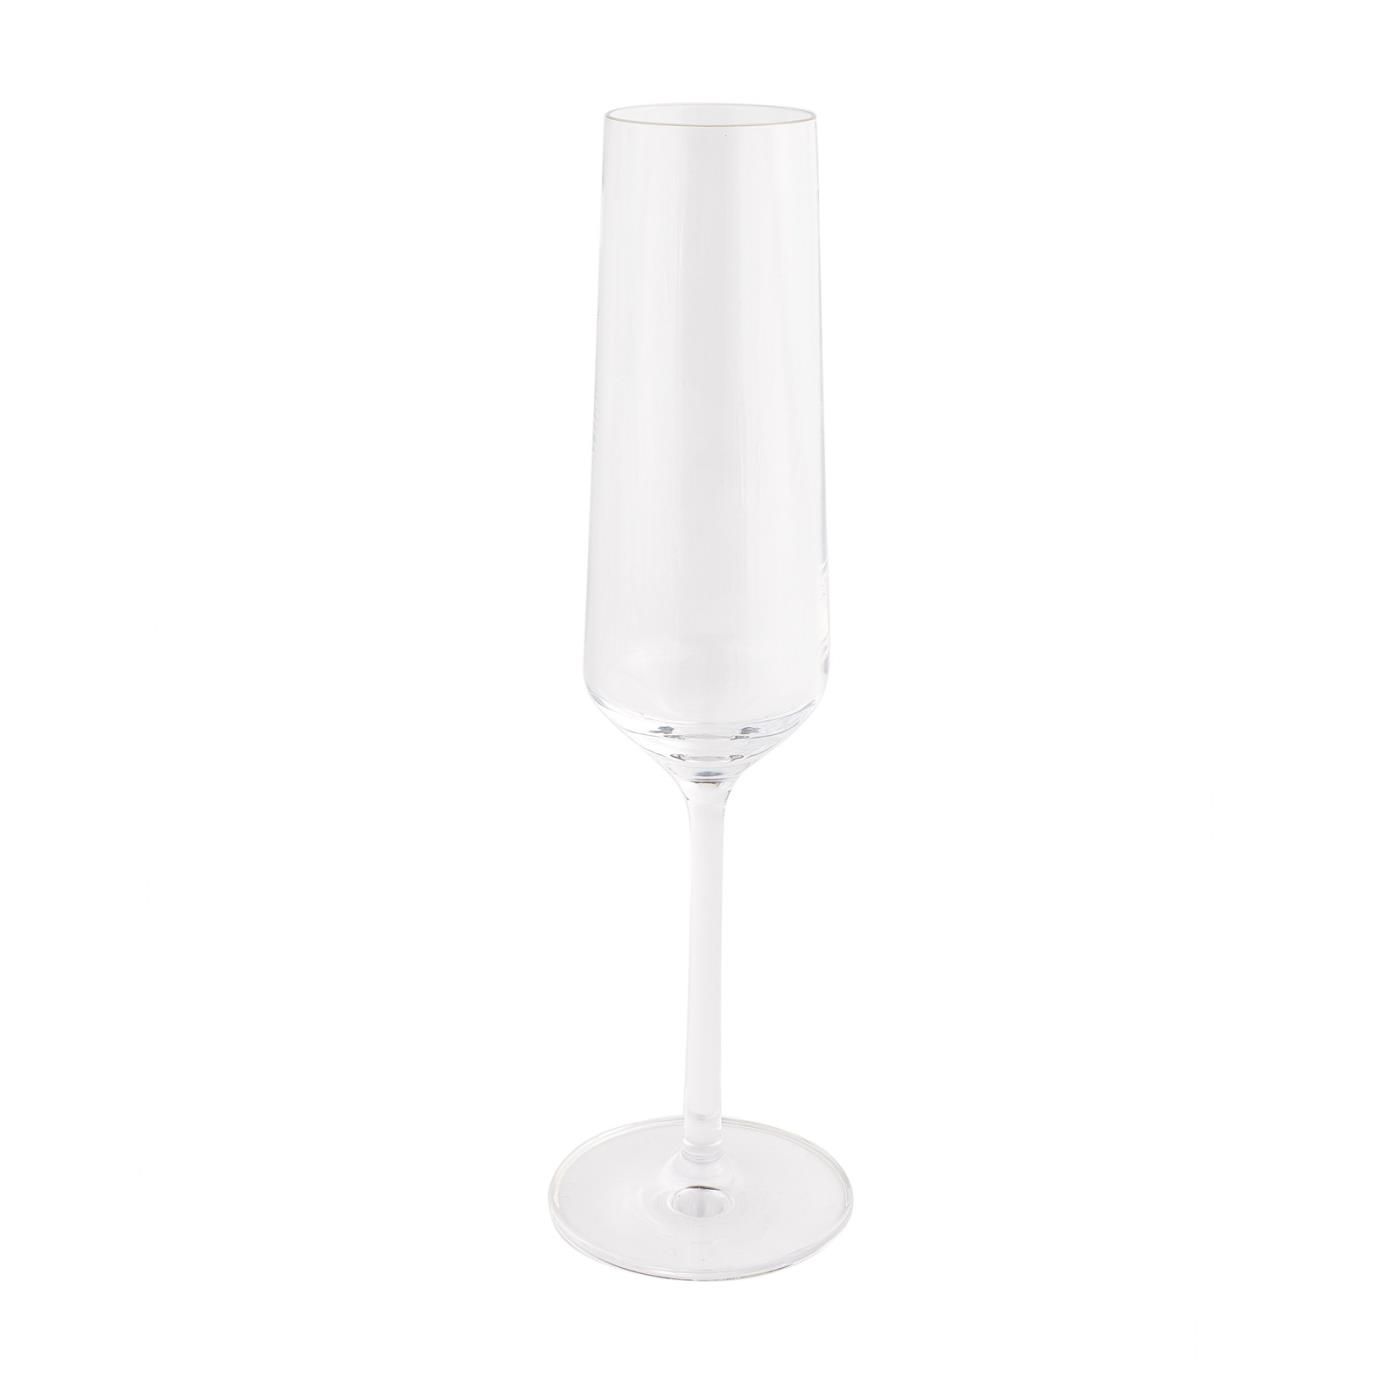 Pure Collection -  Champagne Flute 7.1 oz